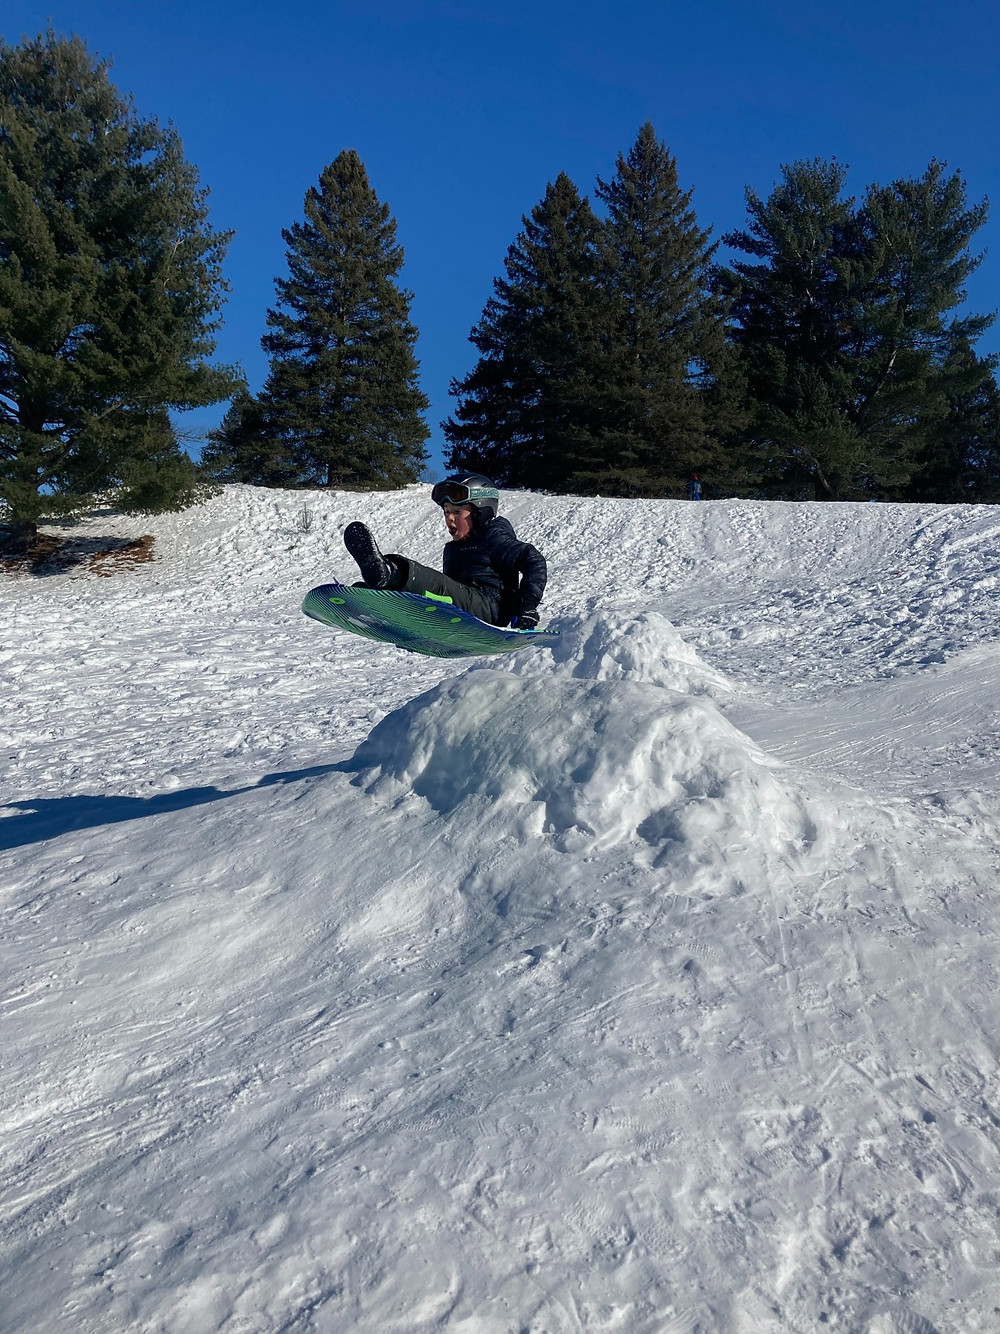 Dominic Valerio of Wakefield caught air at Larrimac Golf Club's sledding hill. With the residential development and year-round recreation activities, including golf, cross-country skiing, and sledding at the Larrimac Golf Club, Chelsea council voted to reduce the speed on Hwy 105 in that area from 70 to 50 km/h. Kate Baillie photo